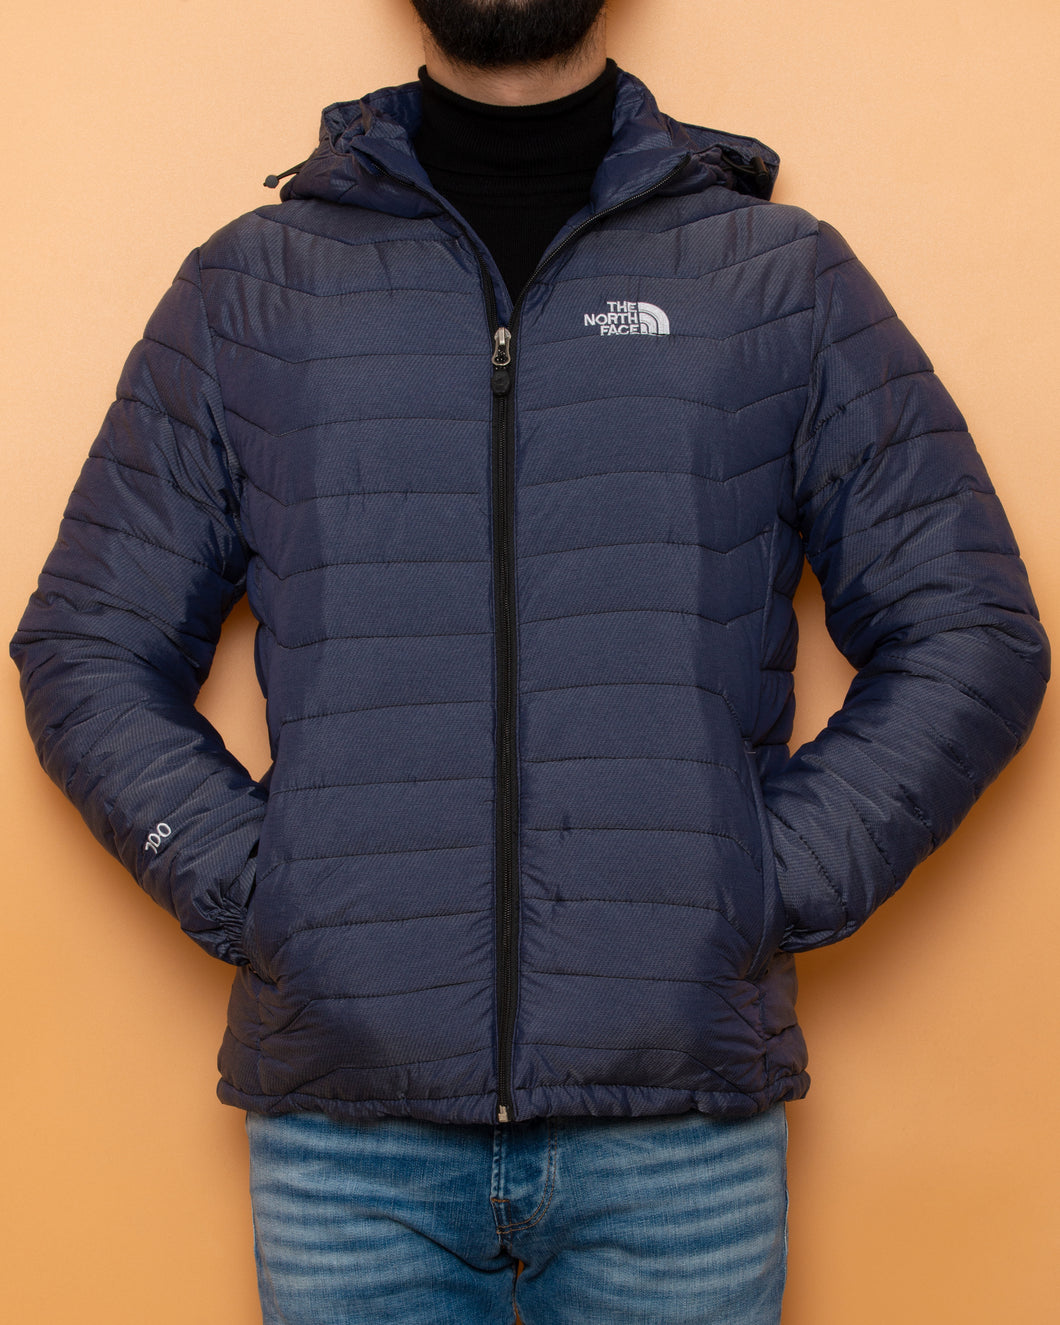 The North Face Waterproof Jacket Light Blue